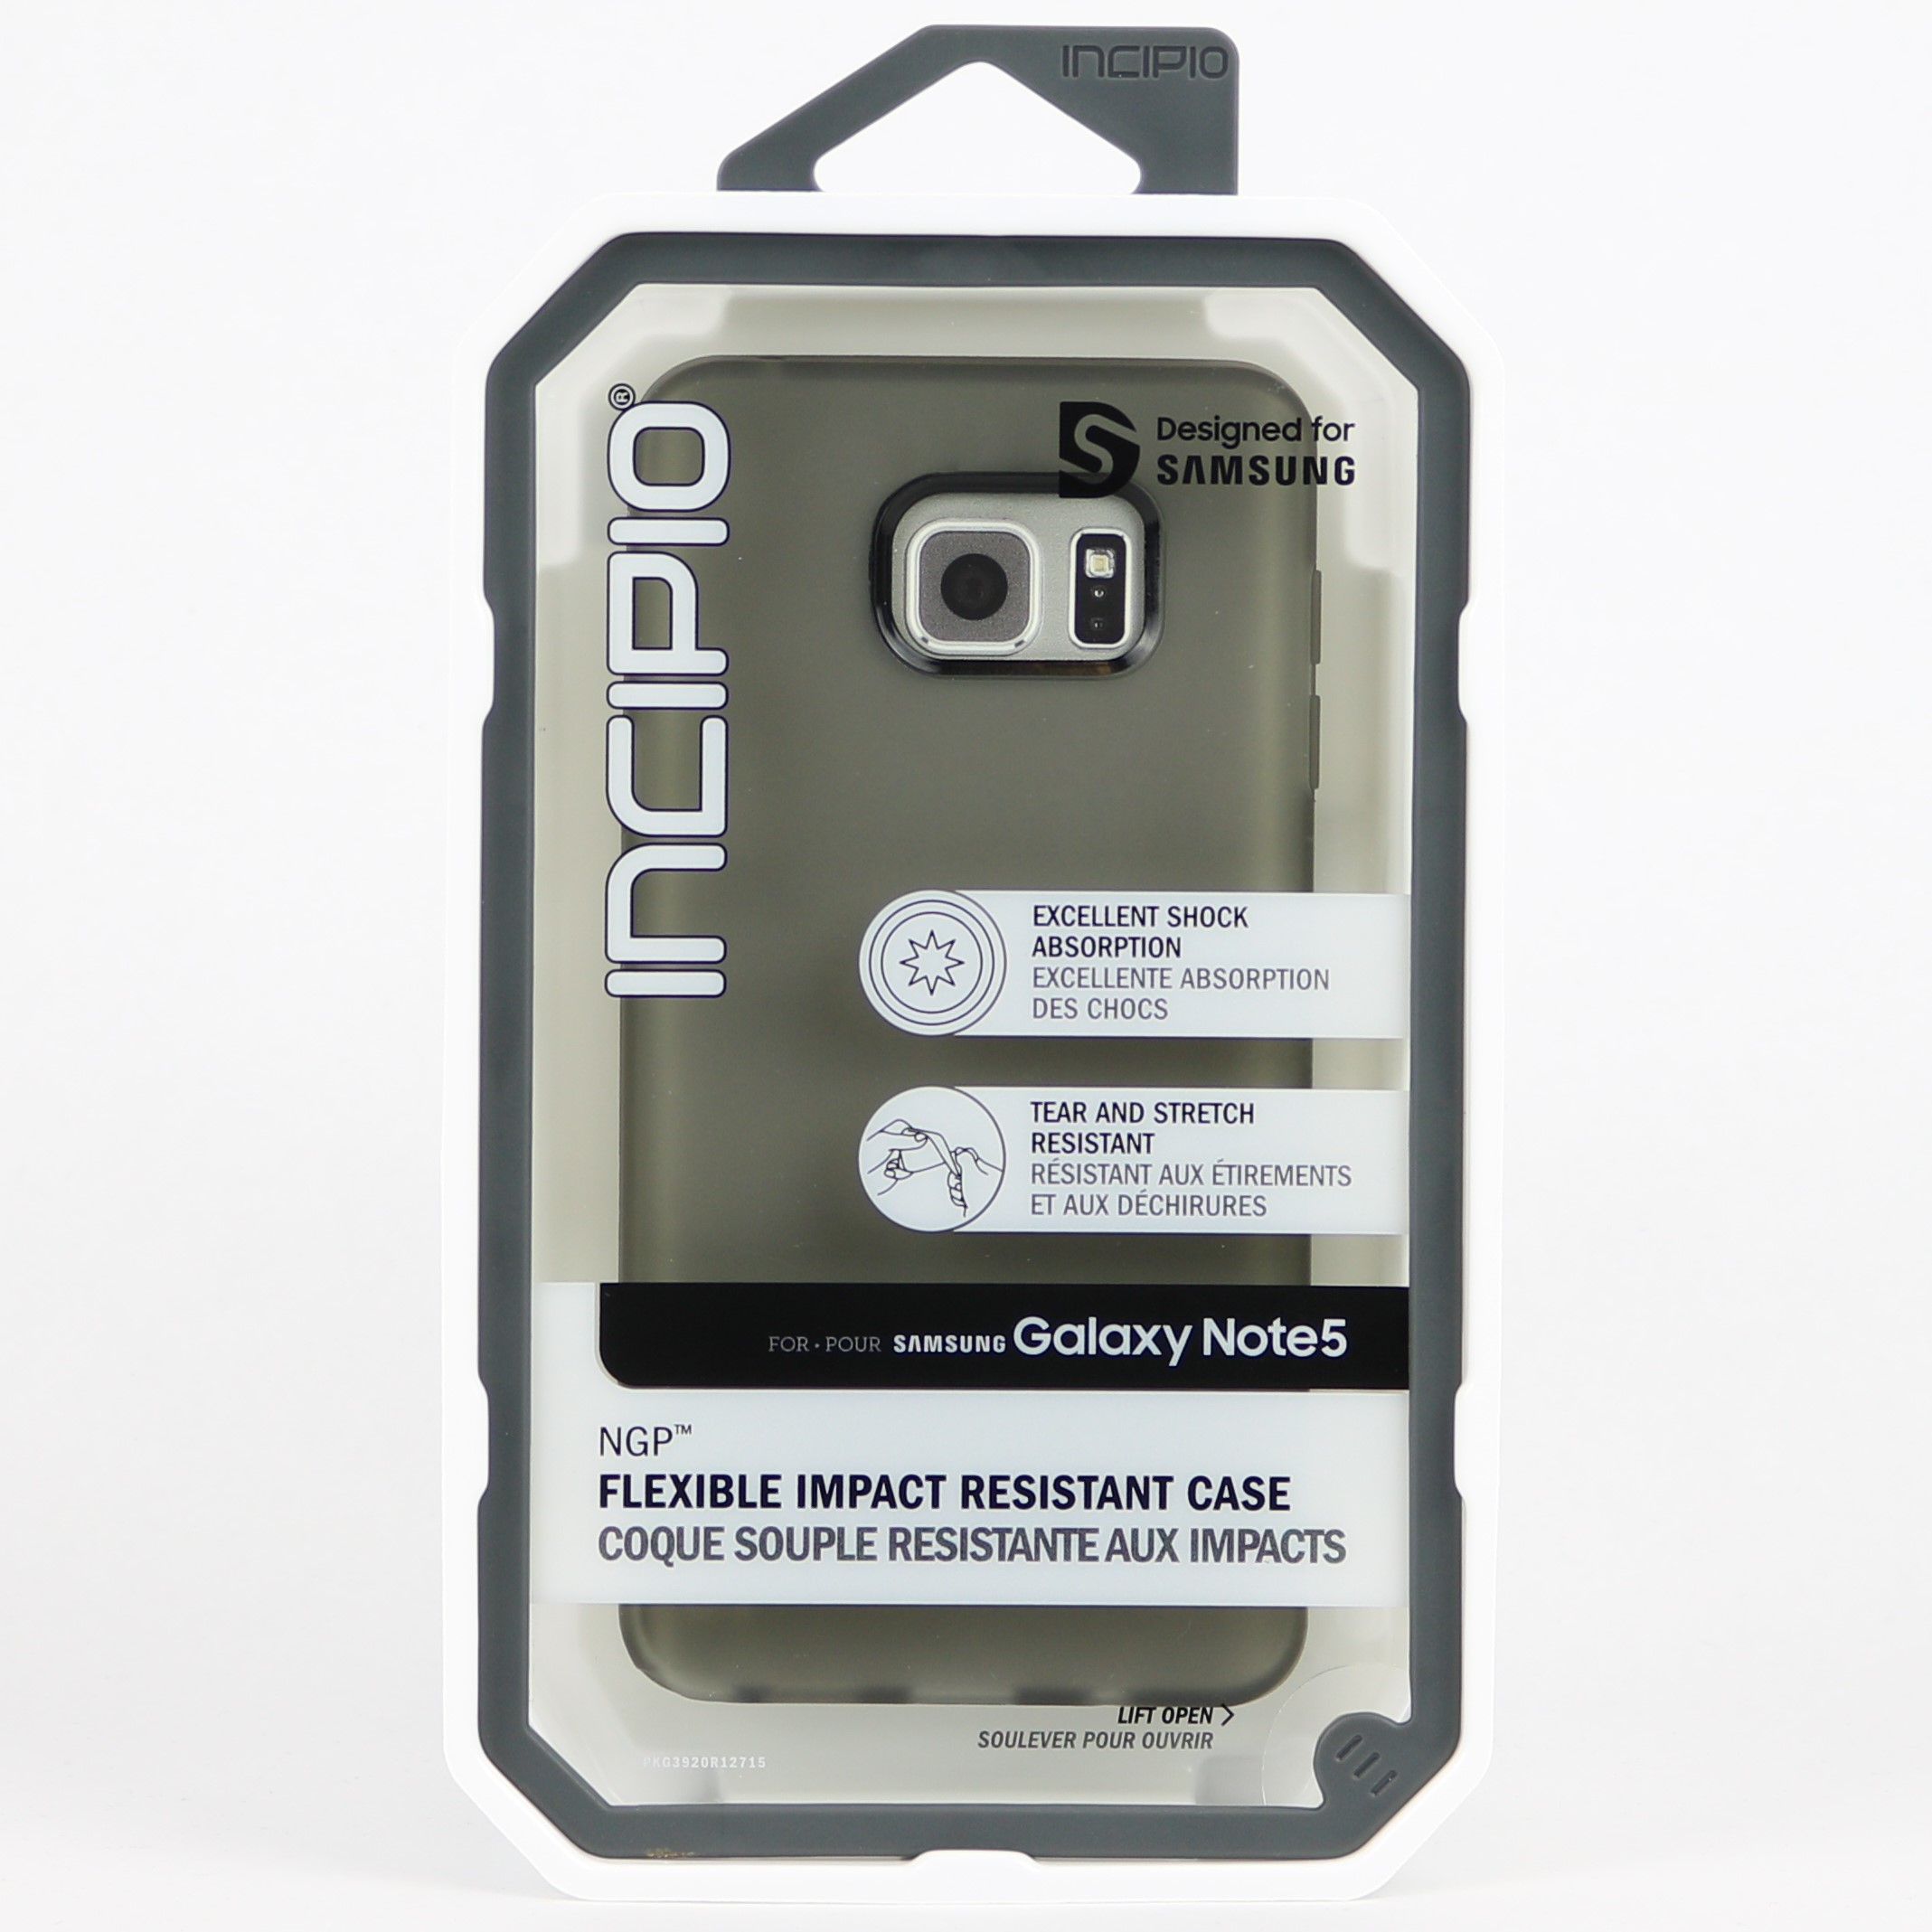 new concept d461c c0a86 Details about New Incipio NGP Flexible Impact Resistant Case for Samsung  Galaxy Note 5 Frost